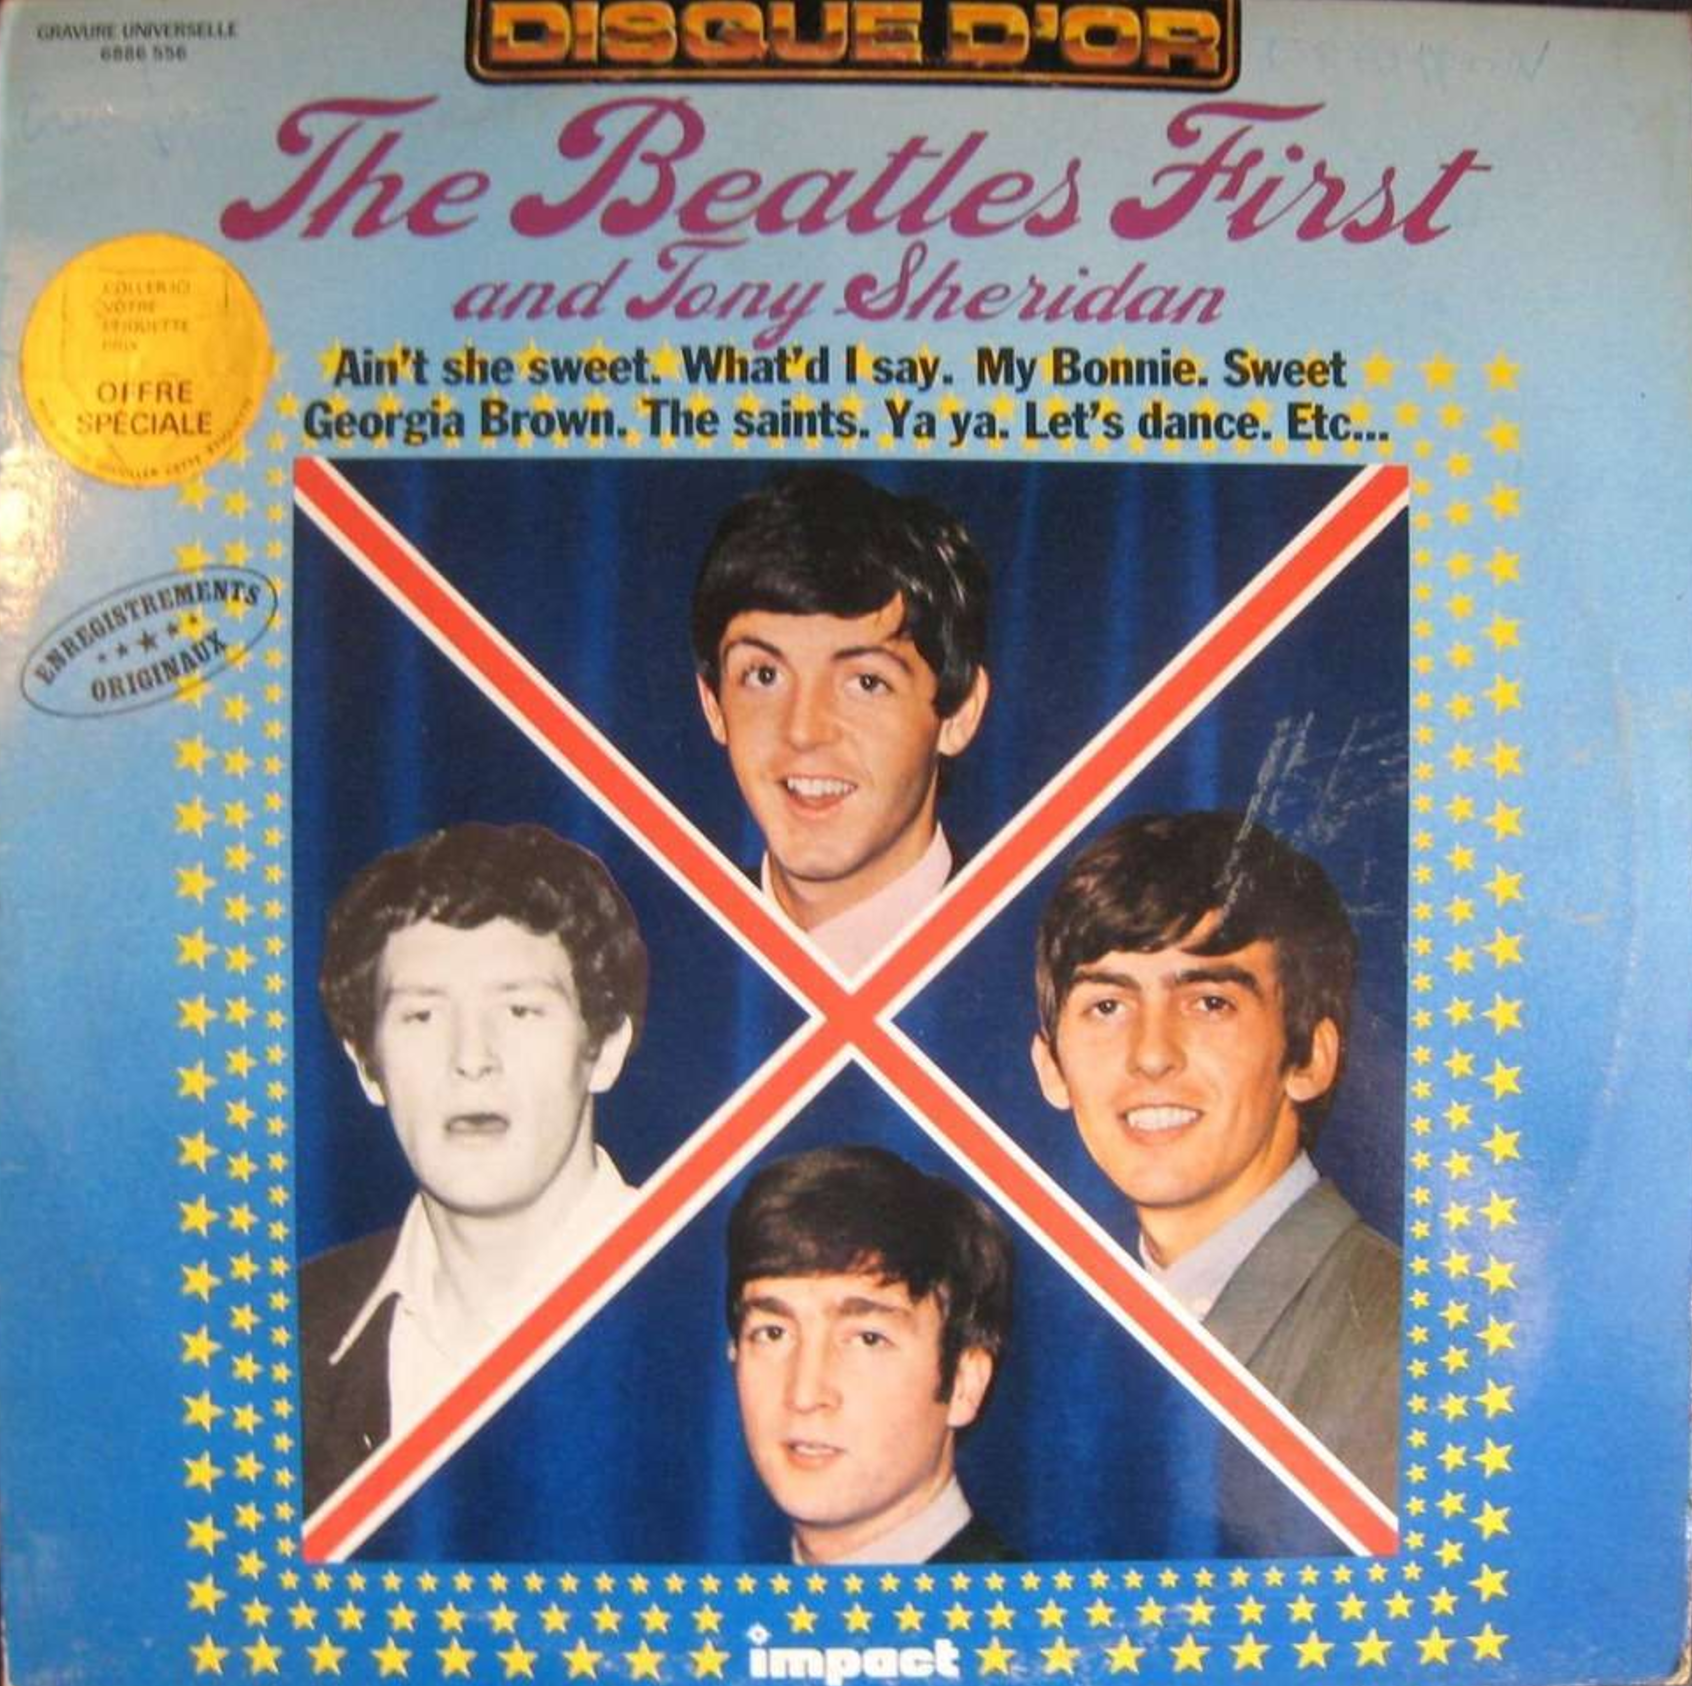 jaquettes4/The-Beatles-First-And-Tony-Sheridan_Disque-d-or.png